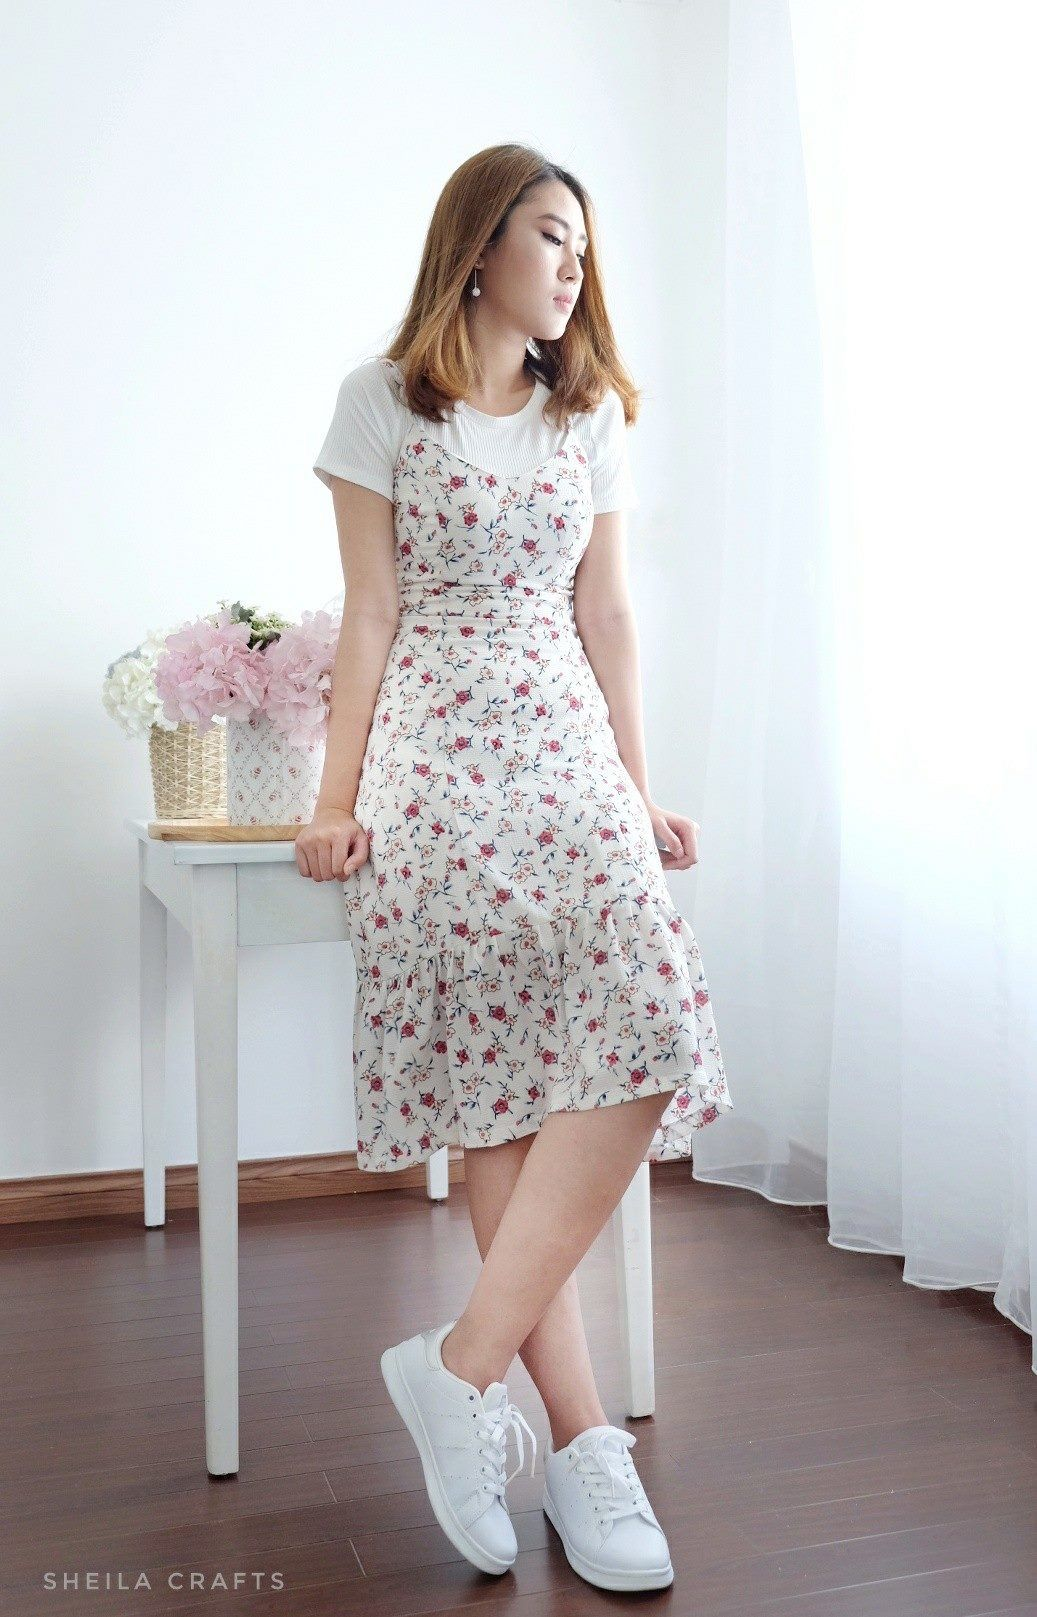 Cute and simple floral print below the knee dress with white shirt